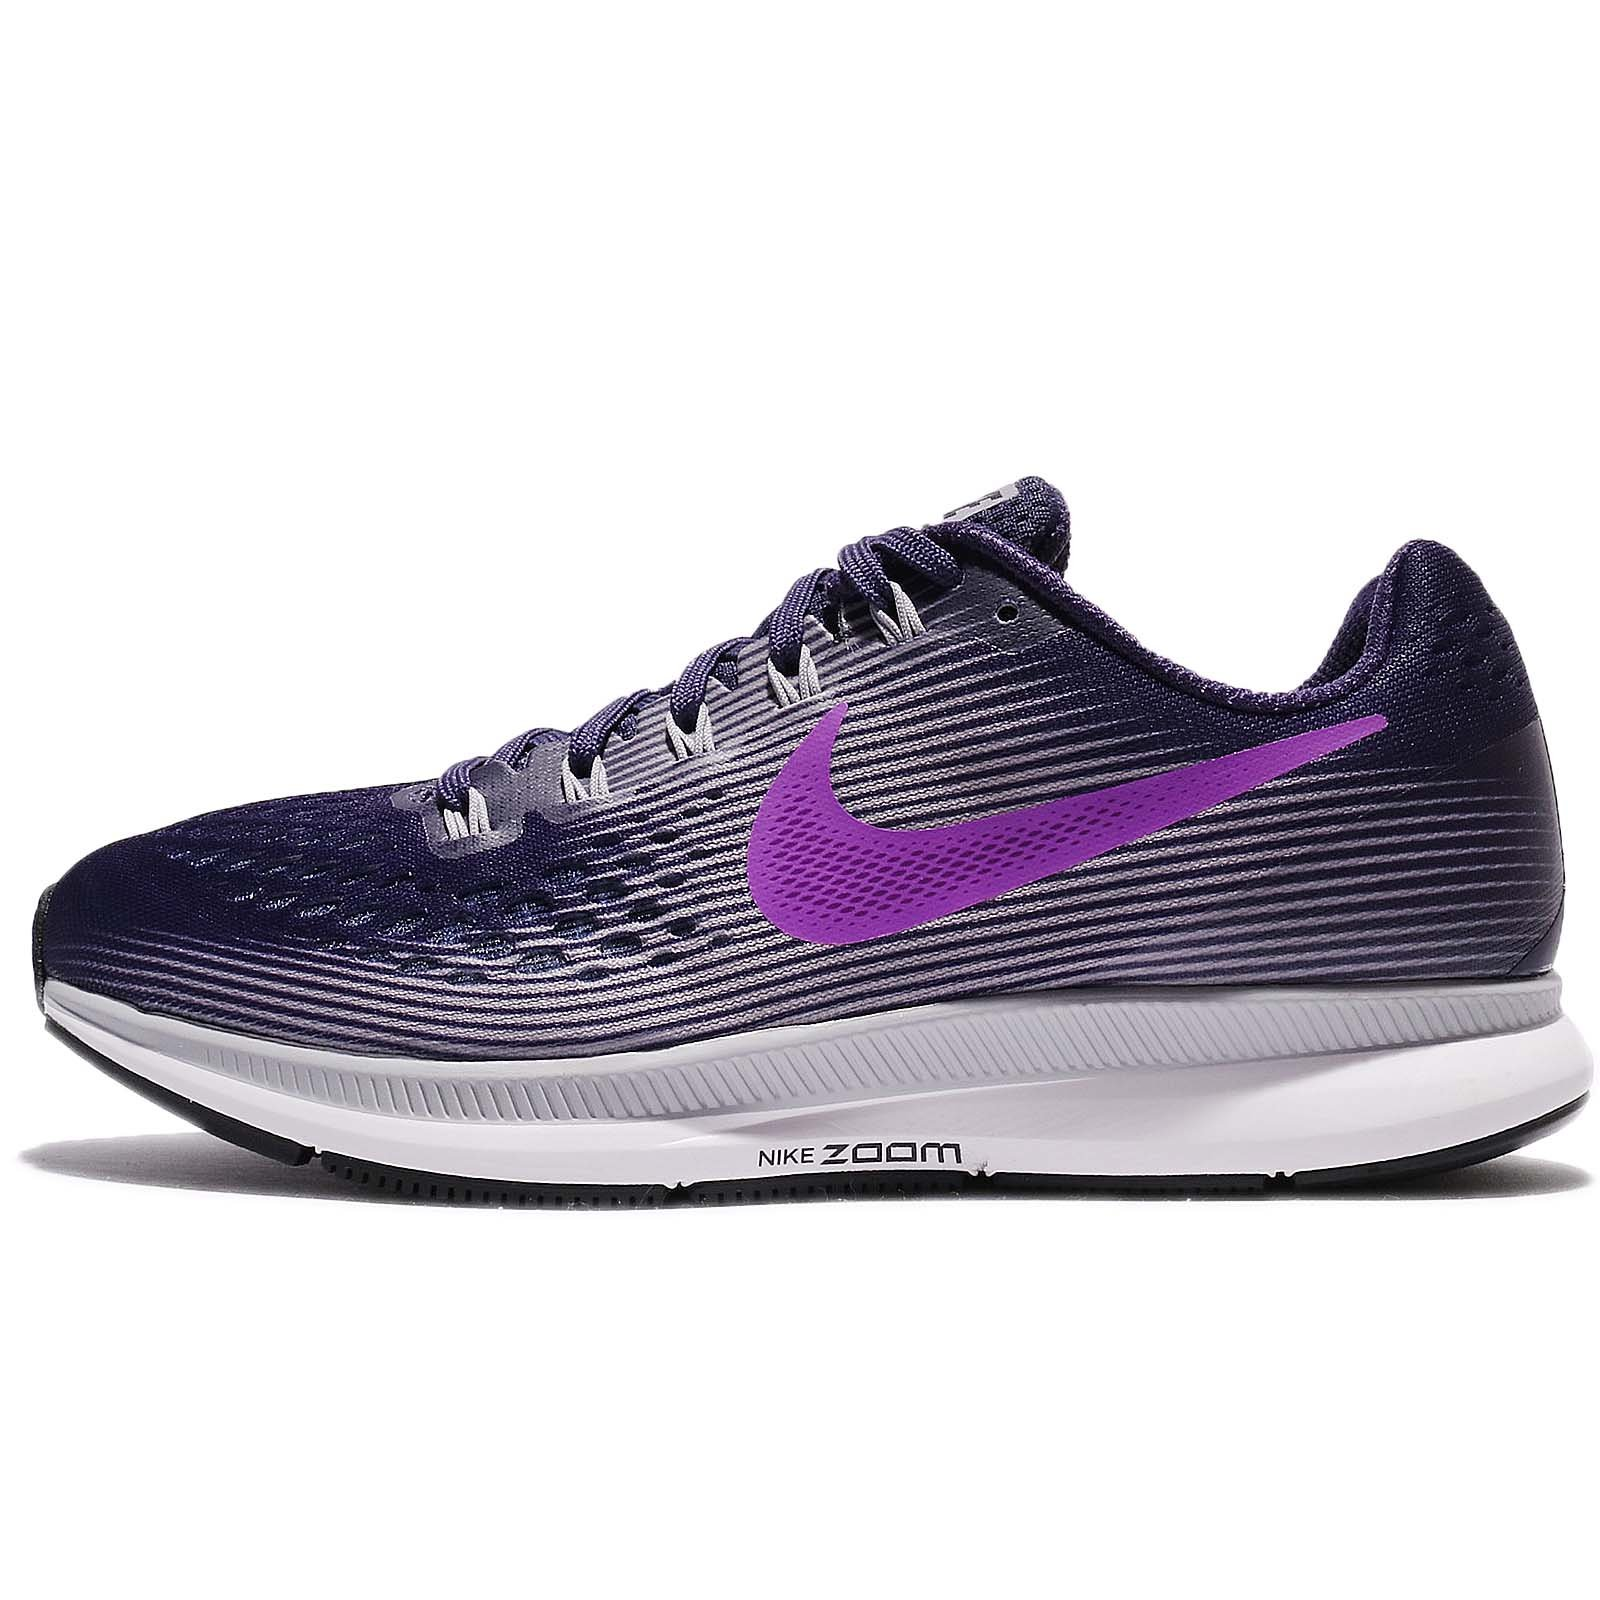 287691ad684 Galleon - NIKE Women s Air Zoom Pegasus 34 Running Shoes (Ink Hyper Violet